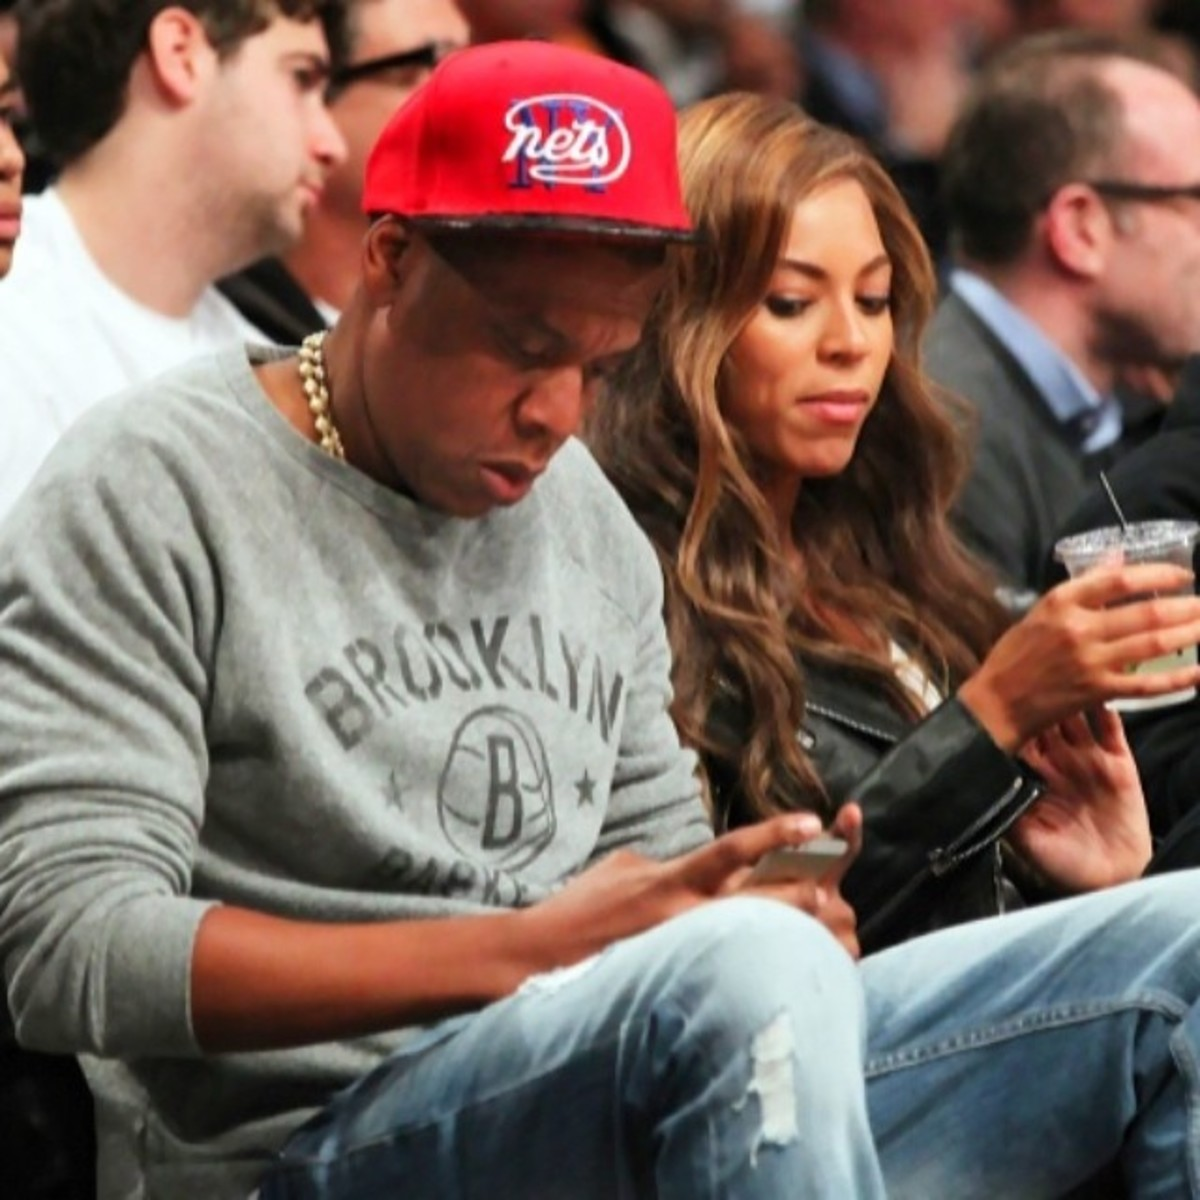 Beyonce eyeing Jay-Z on the low to see who he's texting